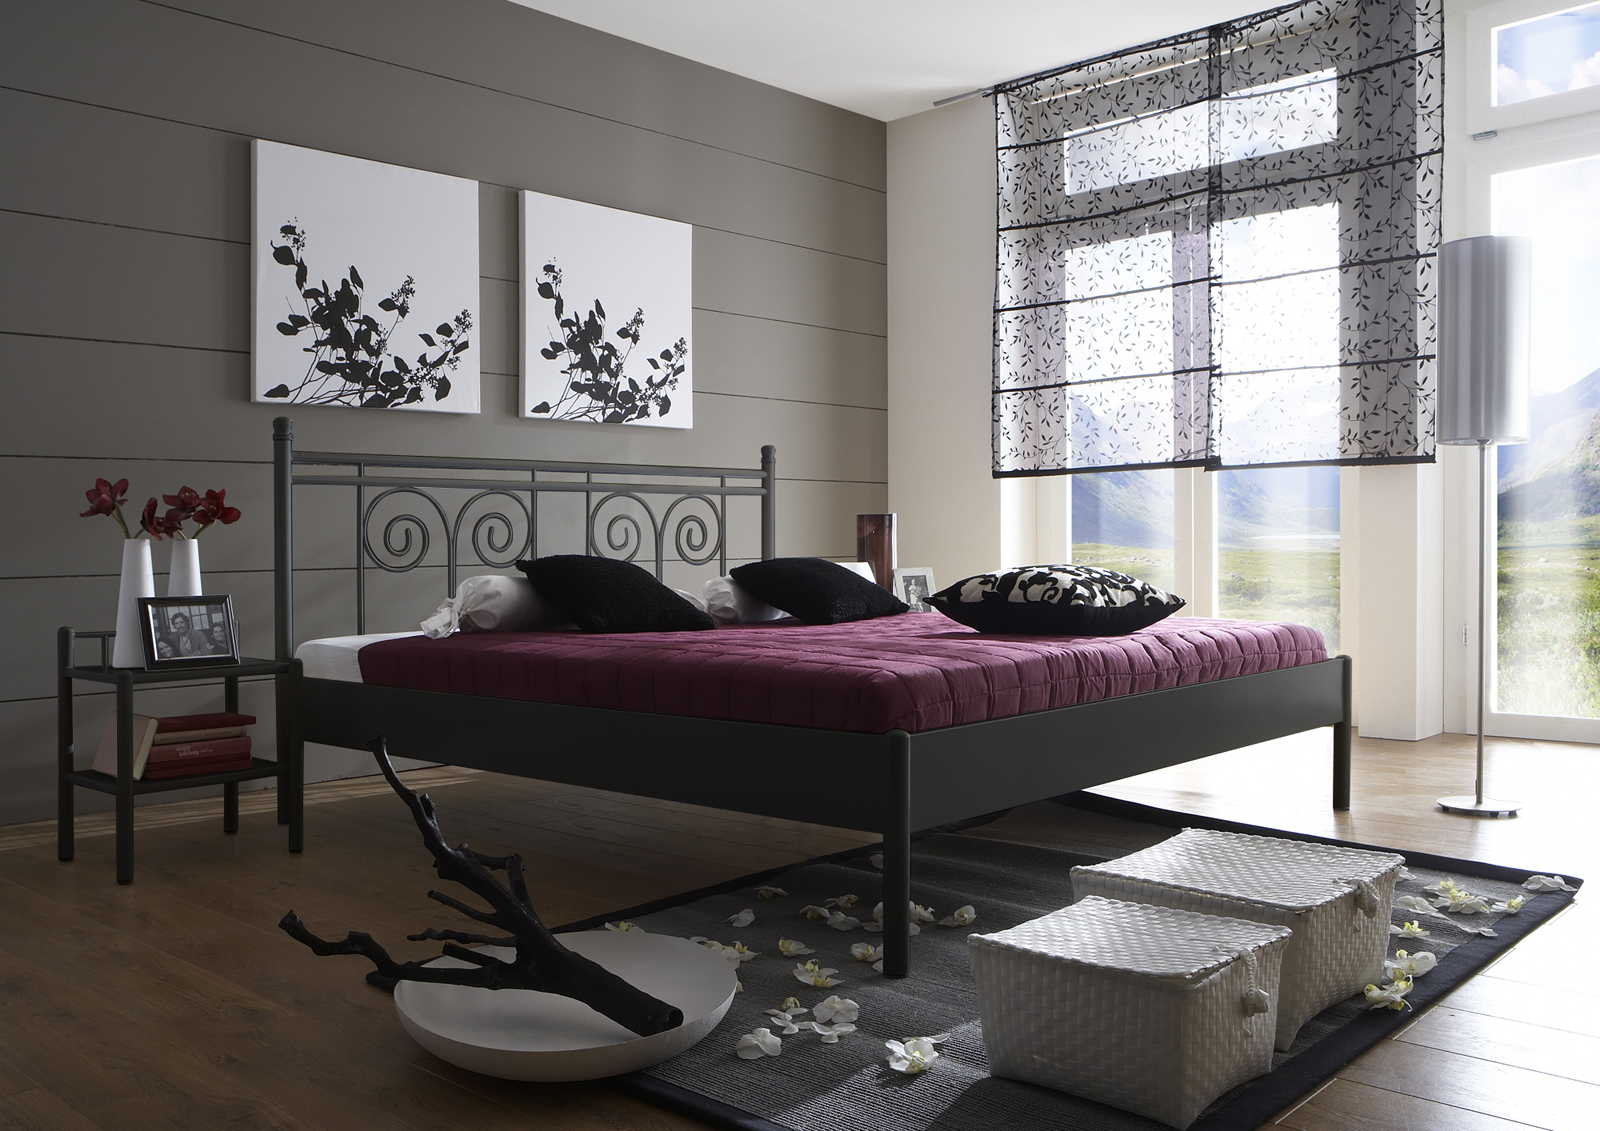 sam metallbett schwarz 140 x 200 cm kos g nstig. Black Bedroom Furniture Sets. Home Design Ideas